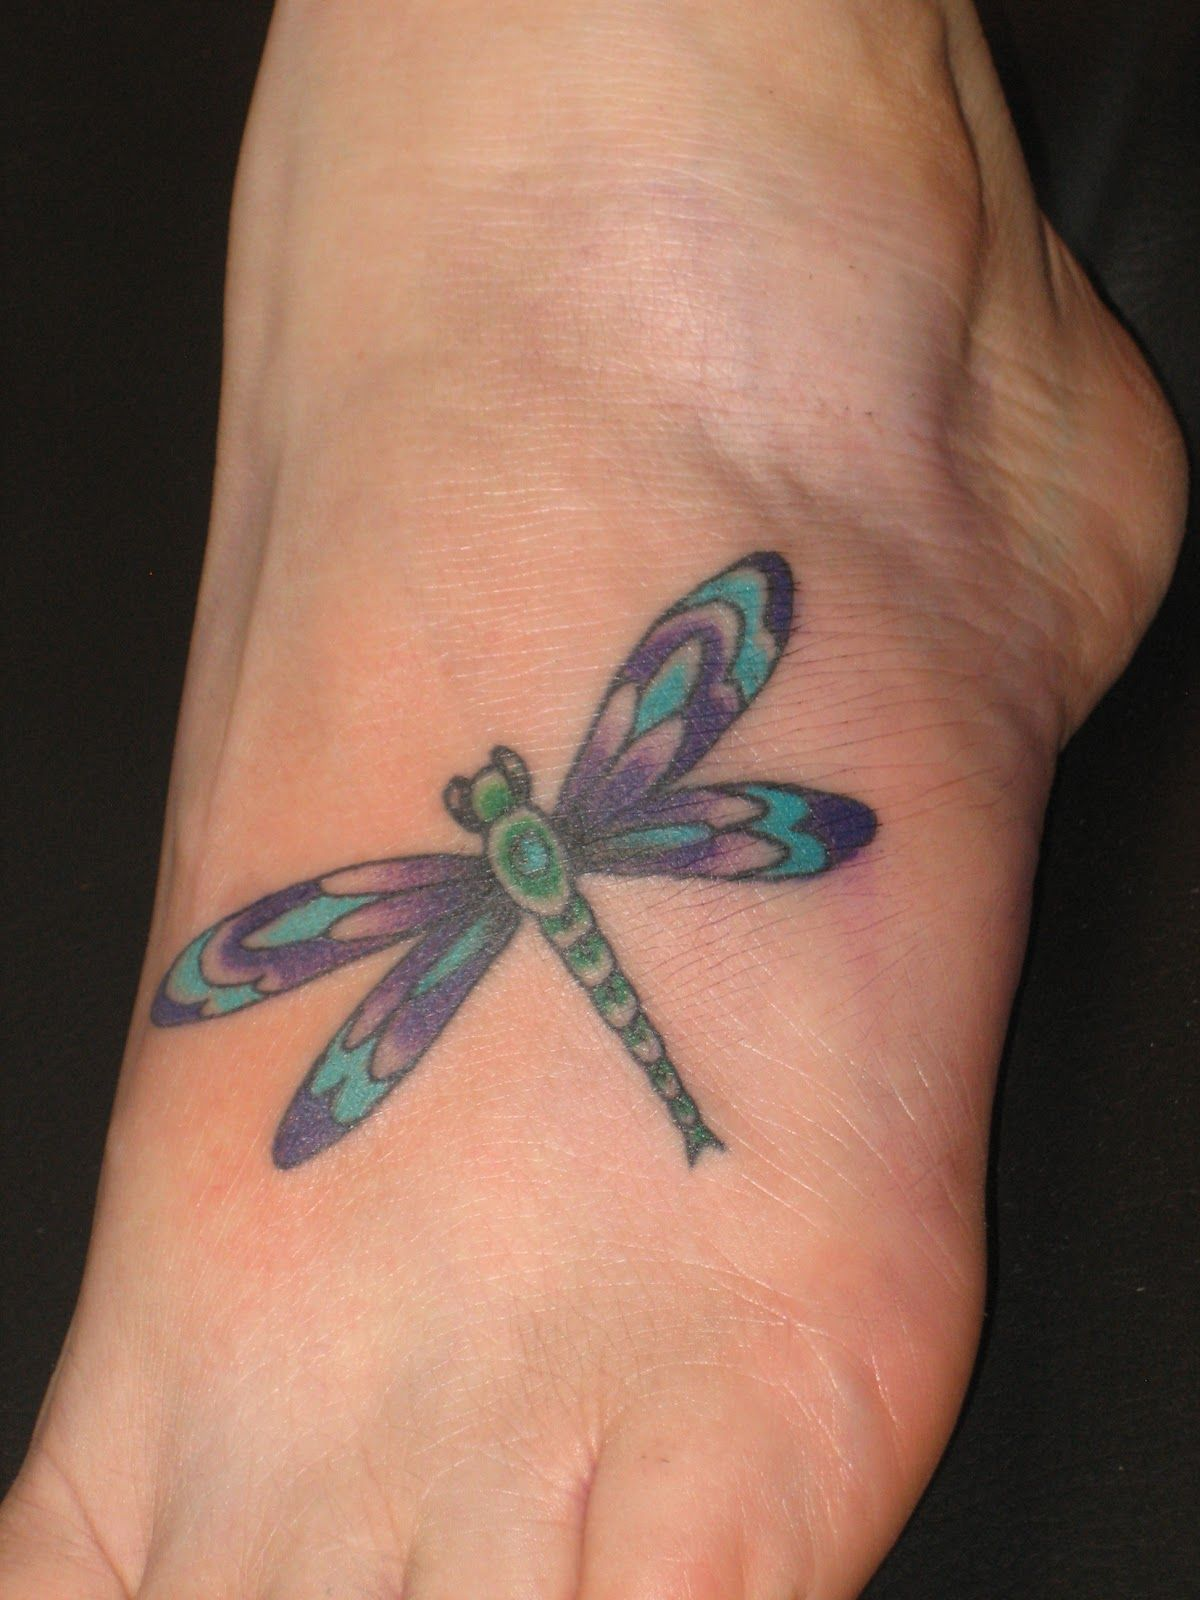 Pin Cute Dragonfly Tattoo Designs Reply Tattoos March 25Th Ideas And Designs